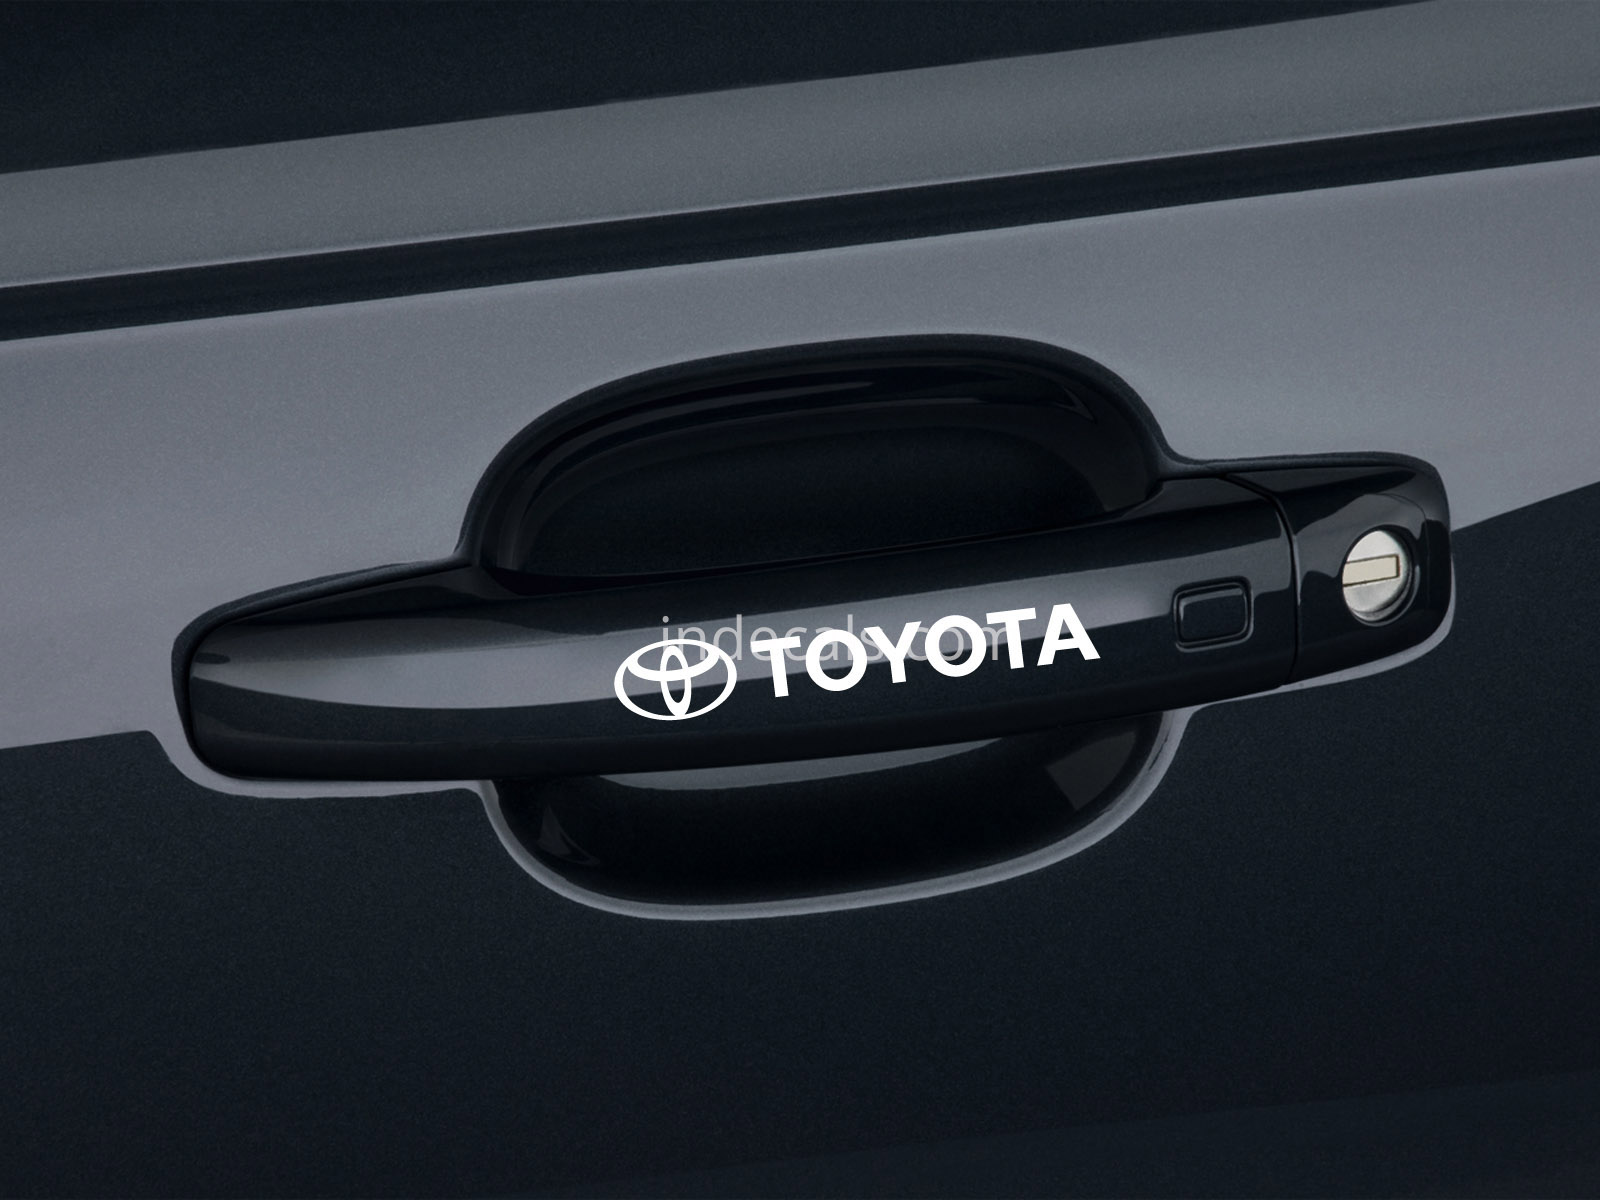 6 x Toyota Stickers for Door Handles - White